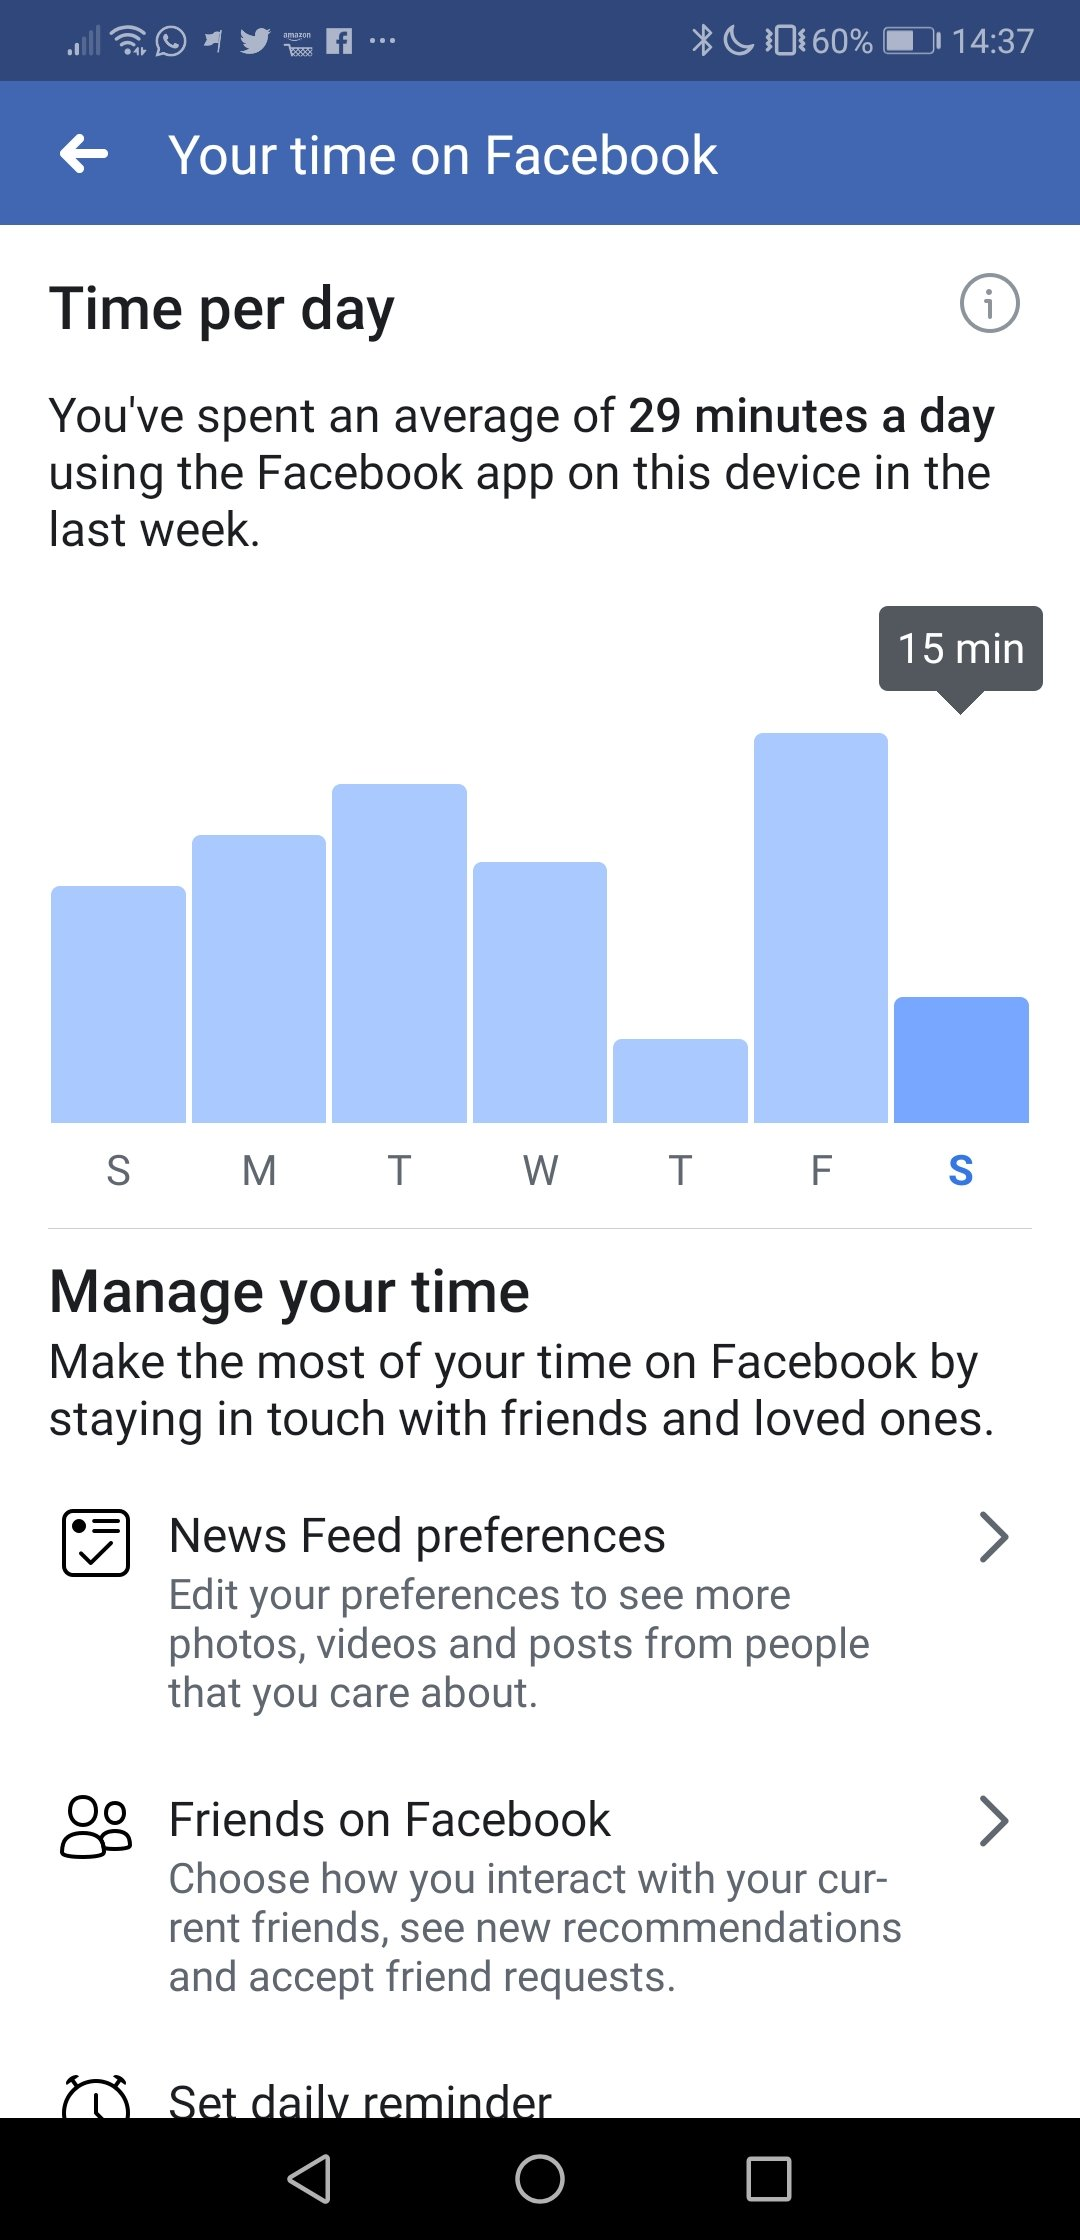 How much time are you spending on Facebook?